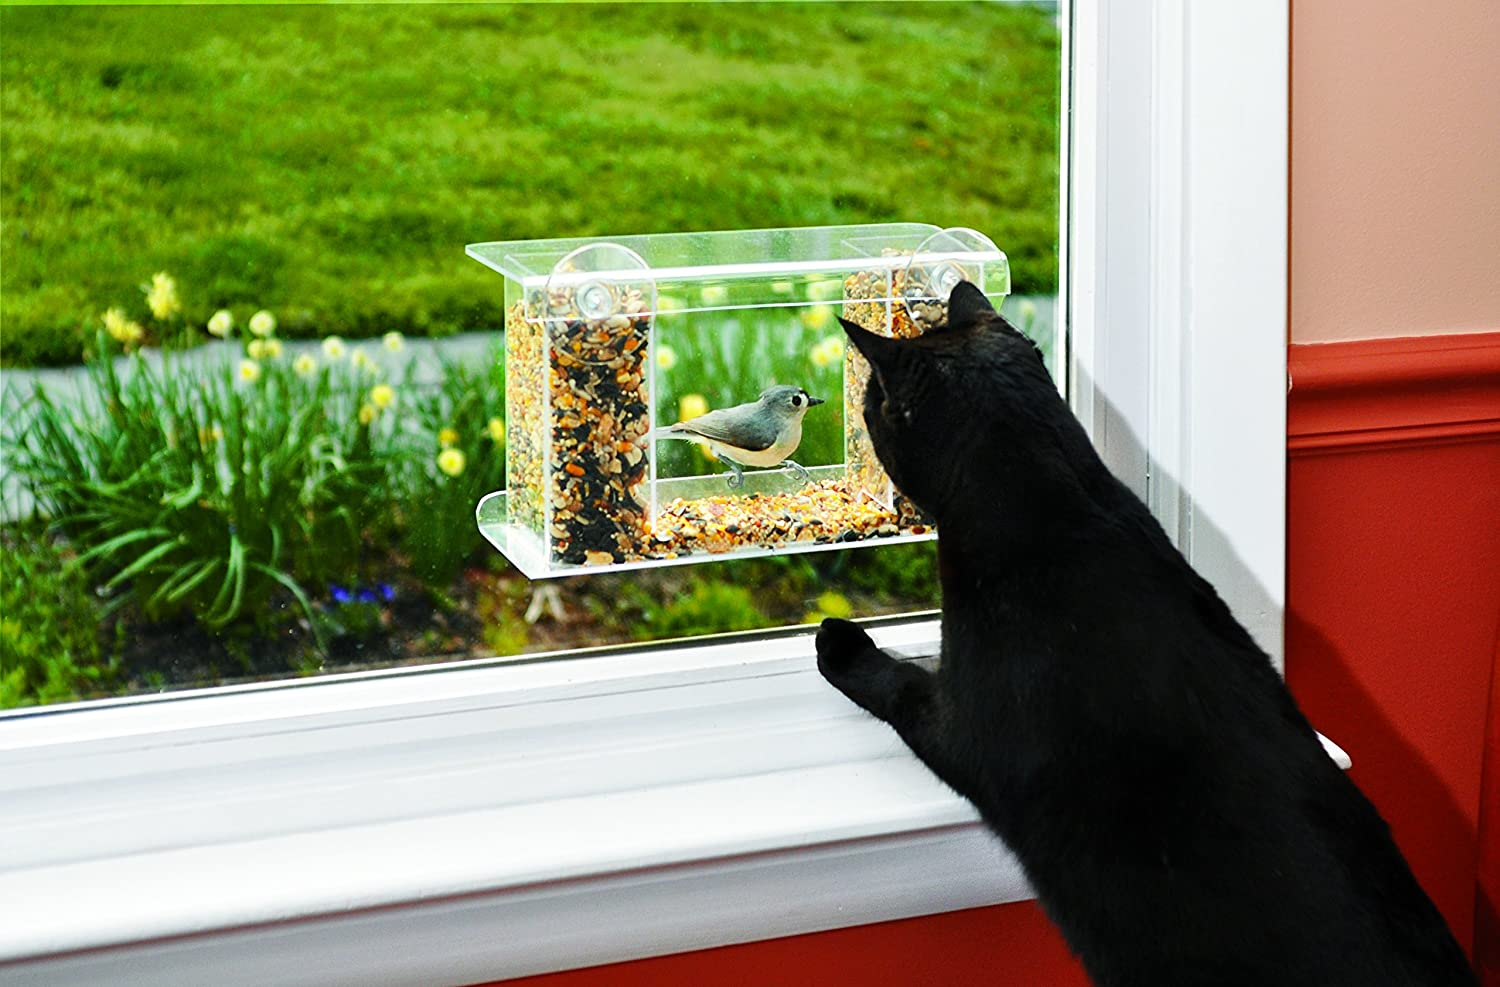 Window bird feeder cat - Amazon Com One Way Mirror Birdfeeder One Way Mirror Bird Feeder Close Up Window Feathered Friends 12 L X 4 3 8 W X 7 H Wild Bird Feeders Patio